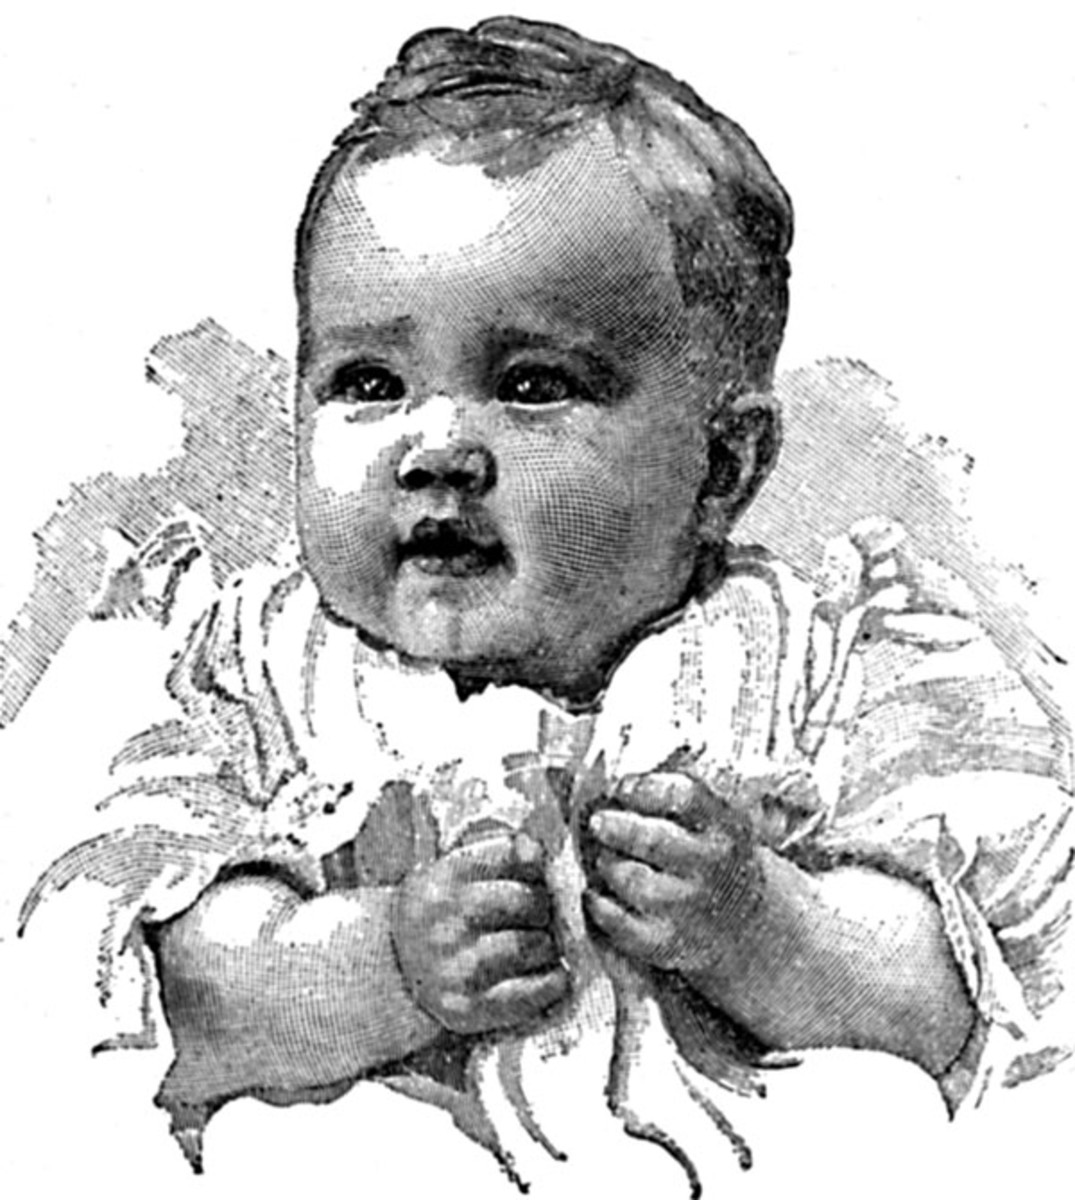 Babies are not all the same at birth - some are real record breakers like the 23 pound infant born though natural birth in 1879.